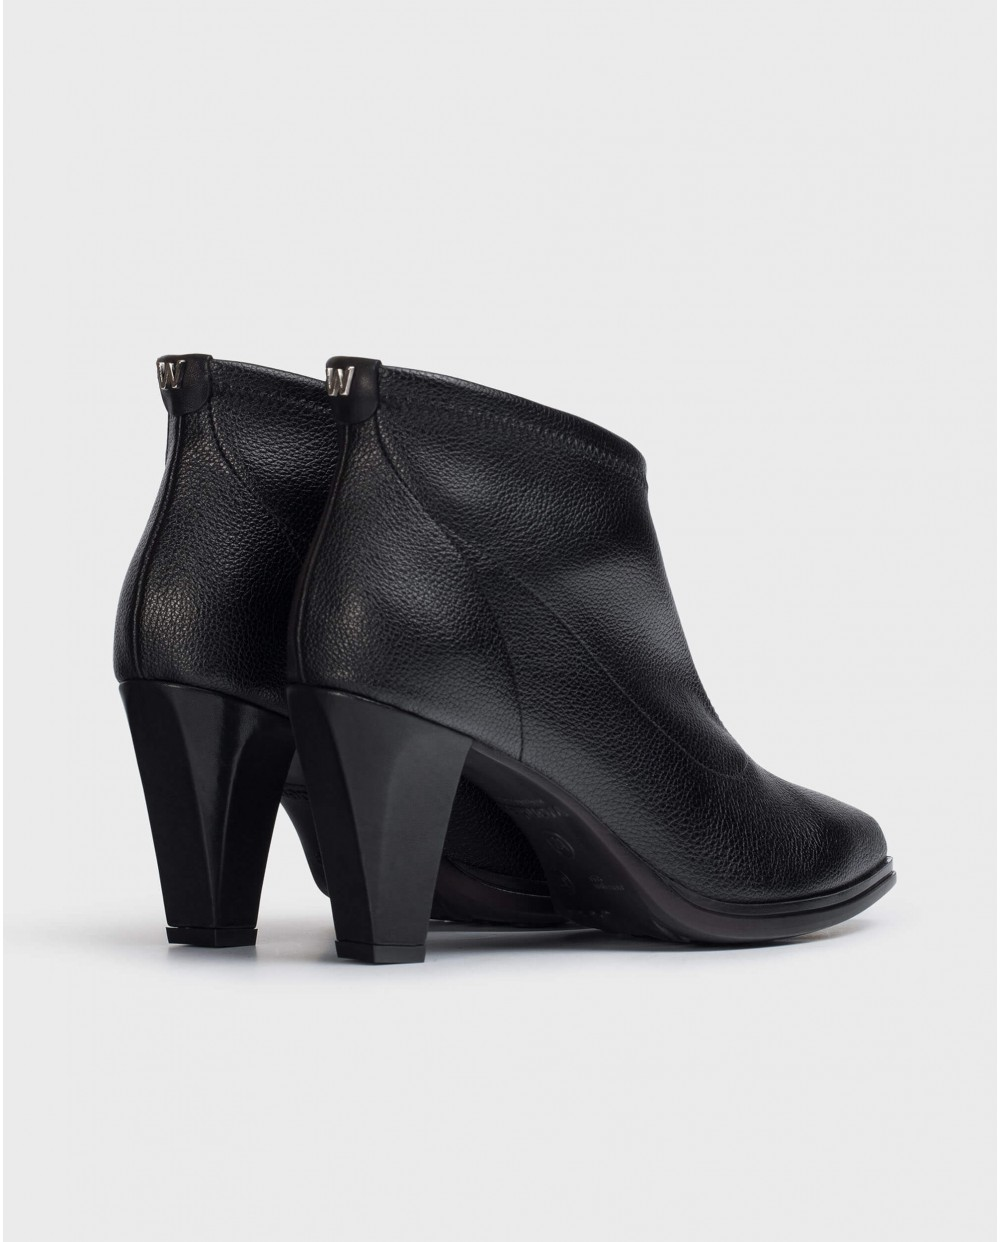 Wonders-Ankle Boots-Black Elastic Ankle Boot